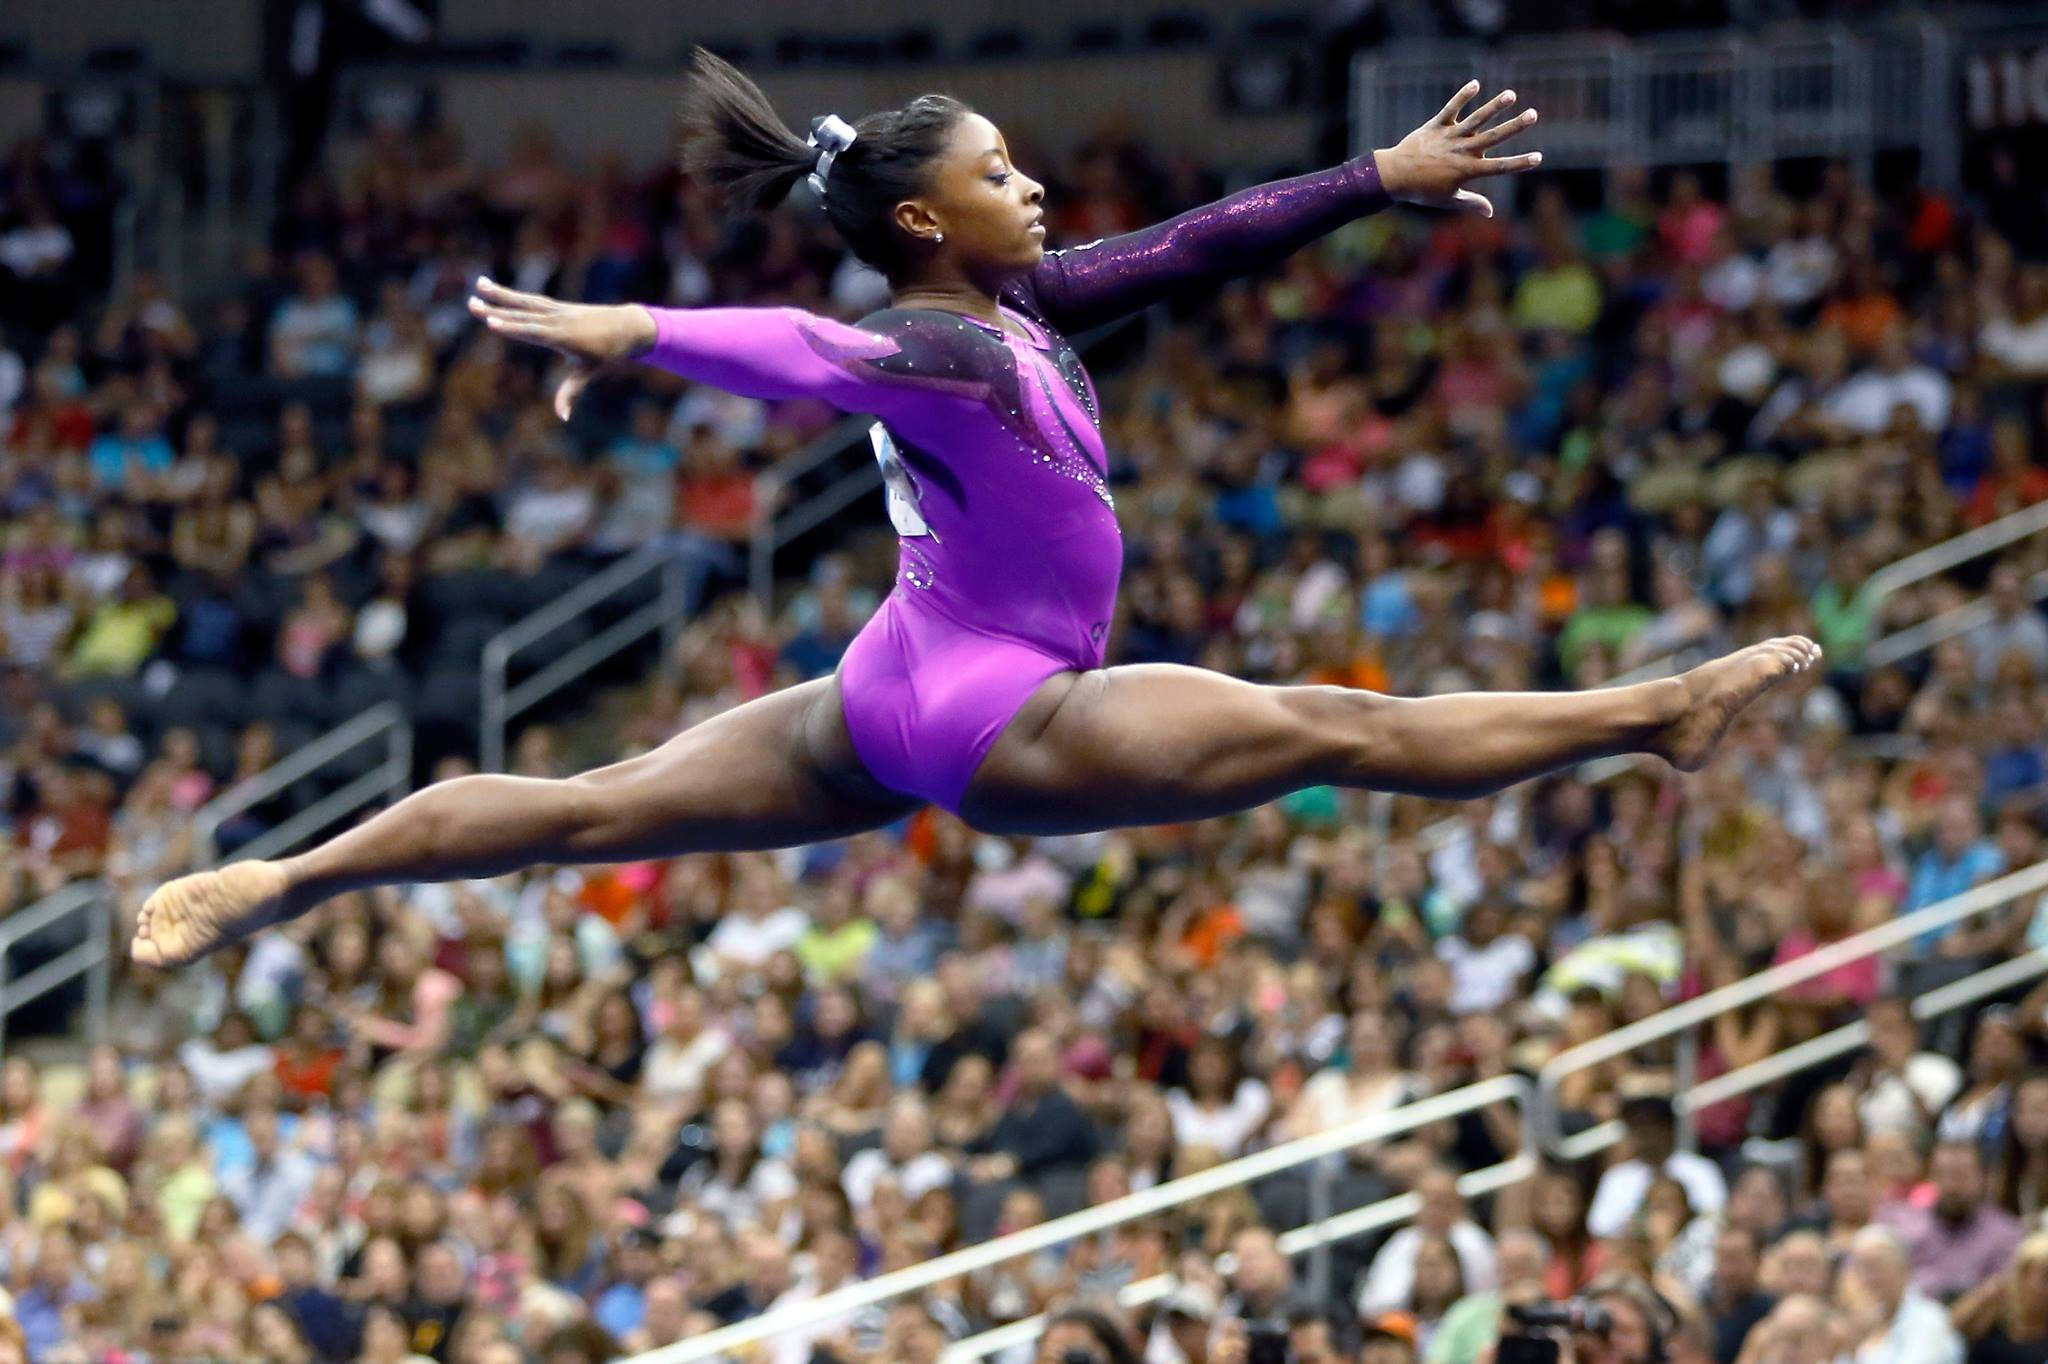 Simone Biles is the most decorated American gymnast of all time and she plans to compete in the 2020 Olympics in Tokyo. (Source: Simone Biles via Facebook)